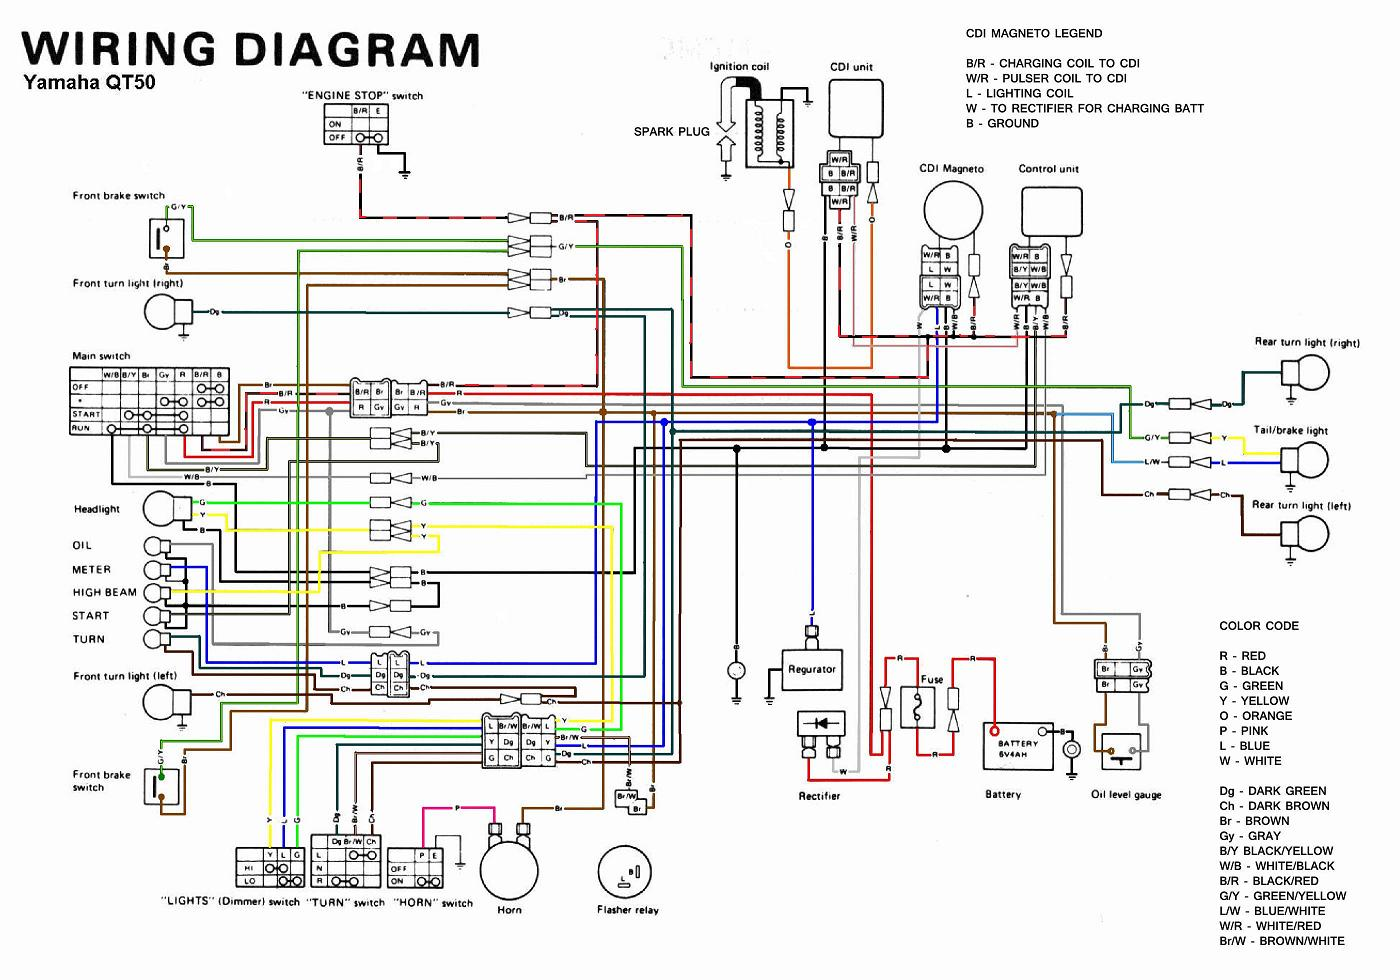 Pleasant Ktm 500 Exc Wiring Diagram Likewise Switch Wiring Diagram On Xr650R Wiring Cloud Hisonuggs Outletorg